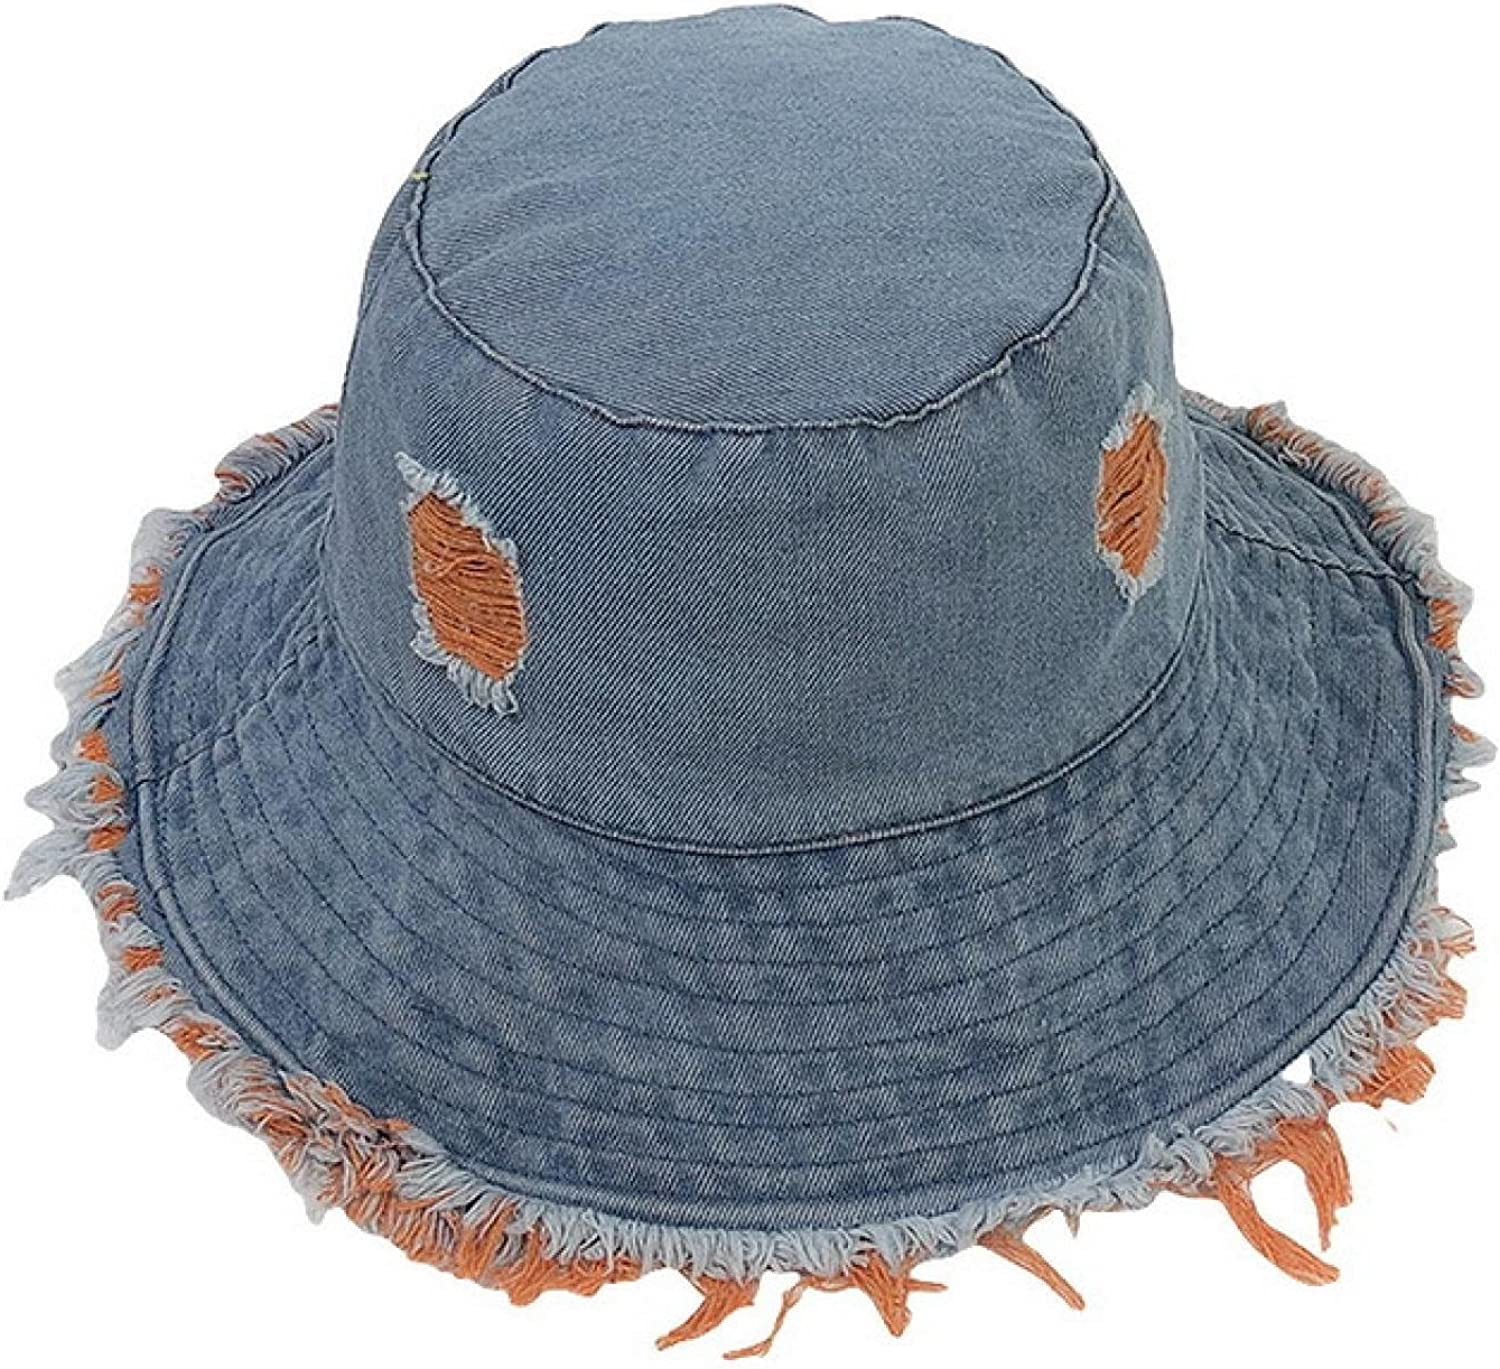 Very popular Limited Special Price MLOPPTE hat Summer Women Bucket Hat Old Ed Rough Cowboy with